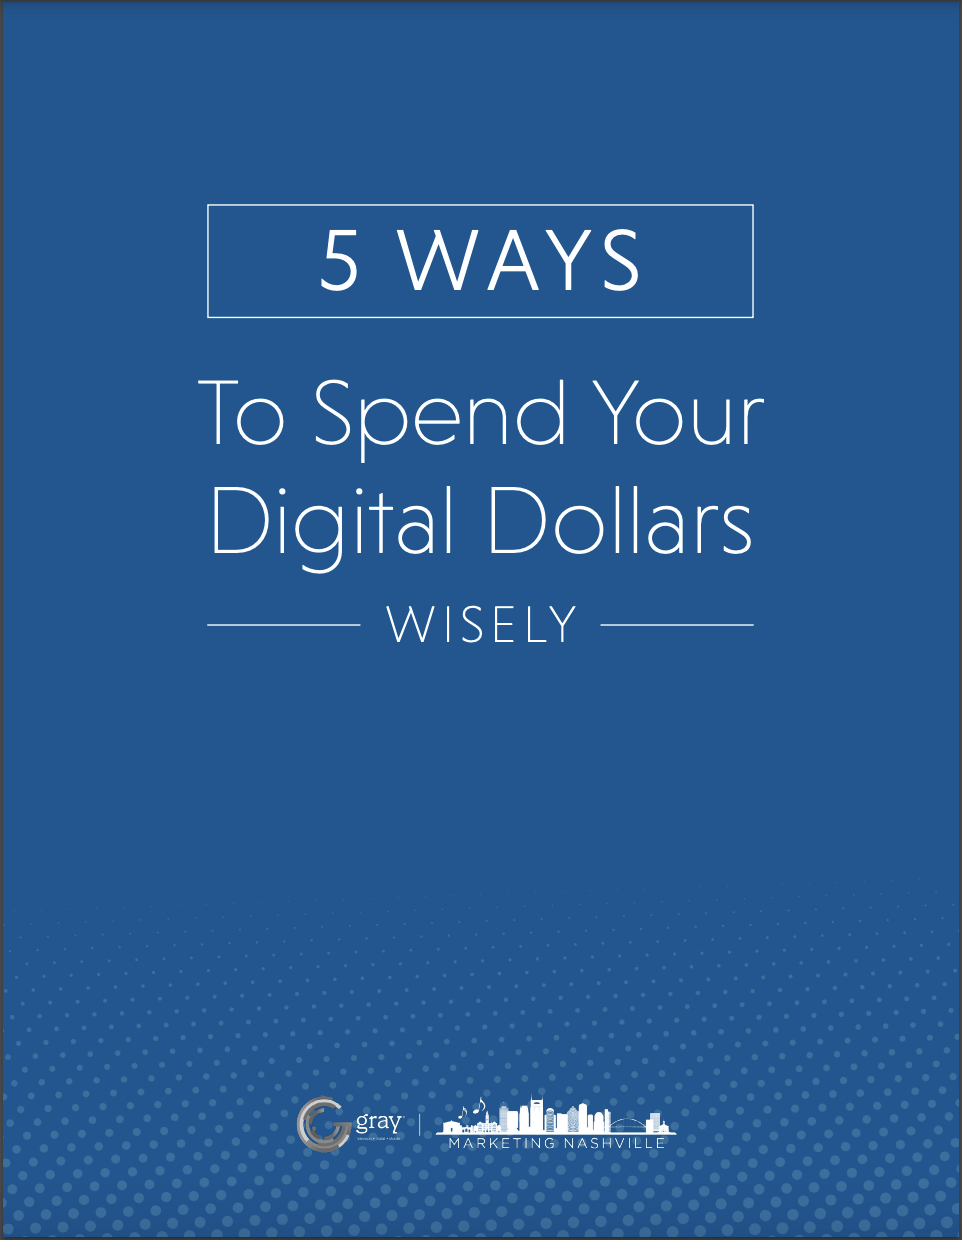 5 Ways to Spend your Digital Dollars Wisely Cover